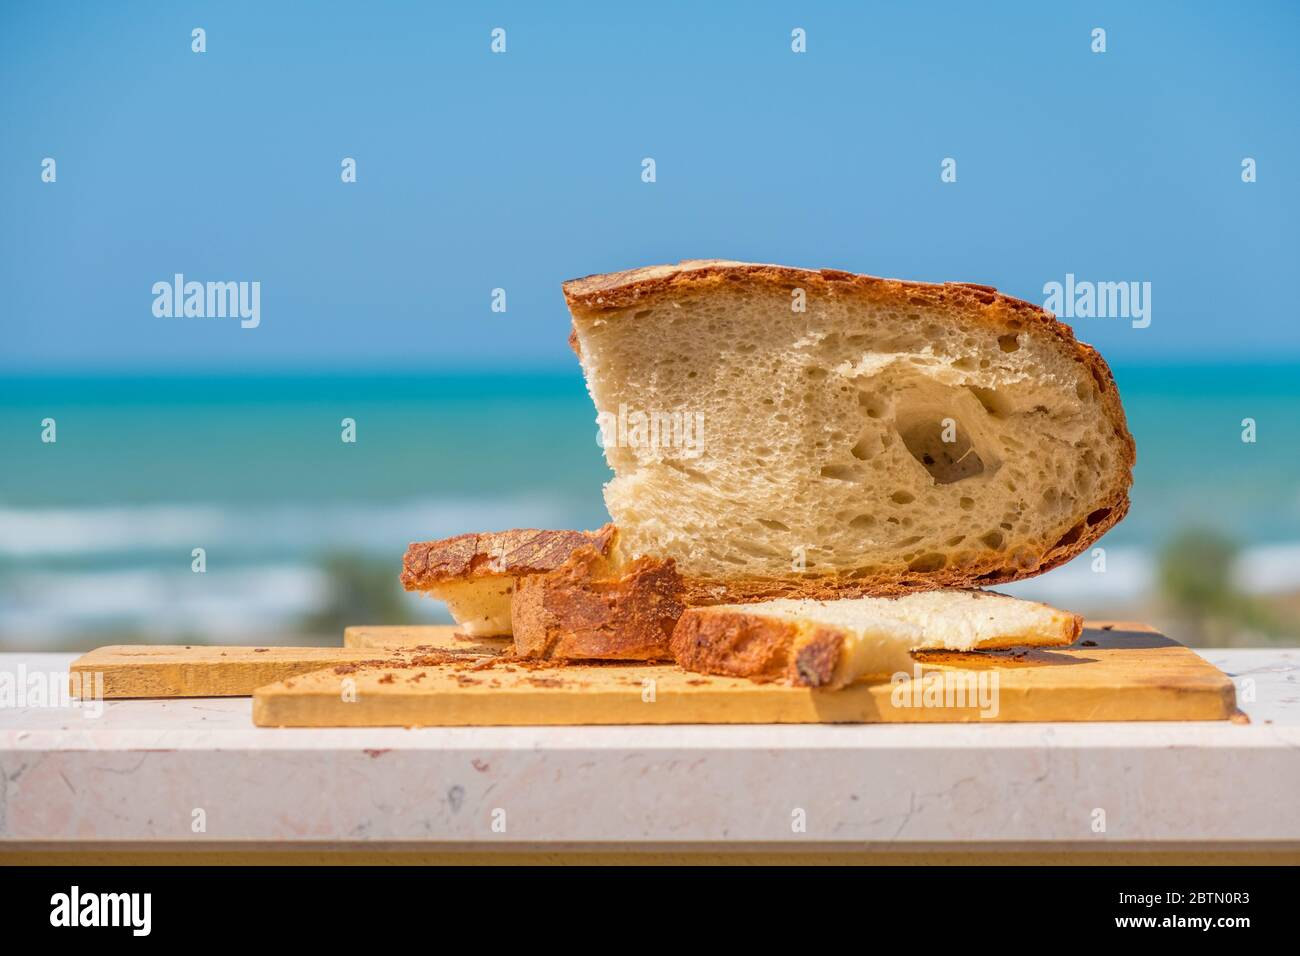 bakery shop background with Pane Pugliese, a traditional bread of South Italy food tradition Stock Photo